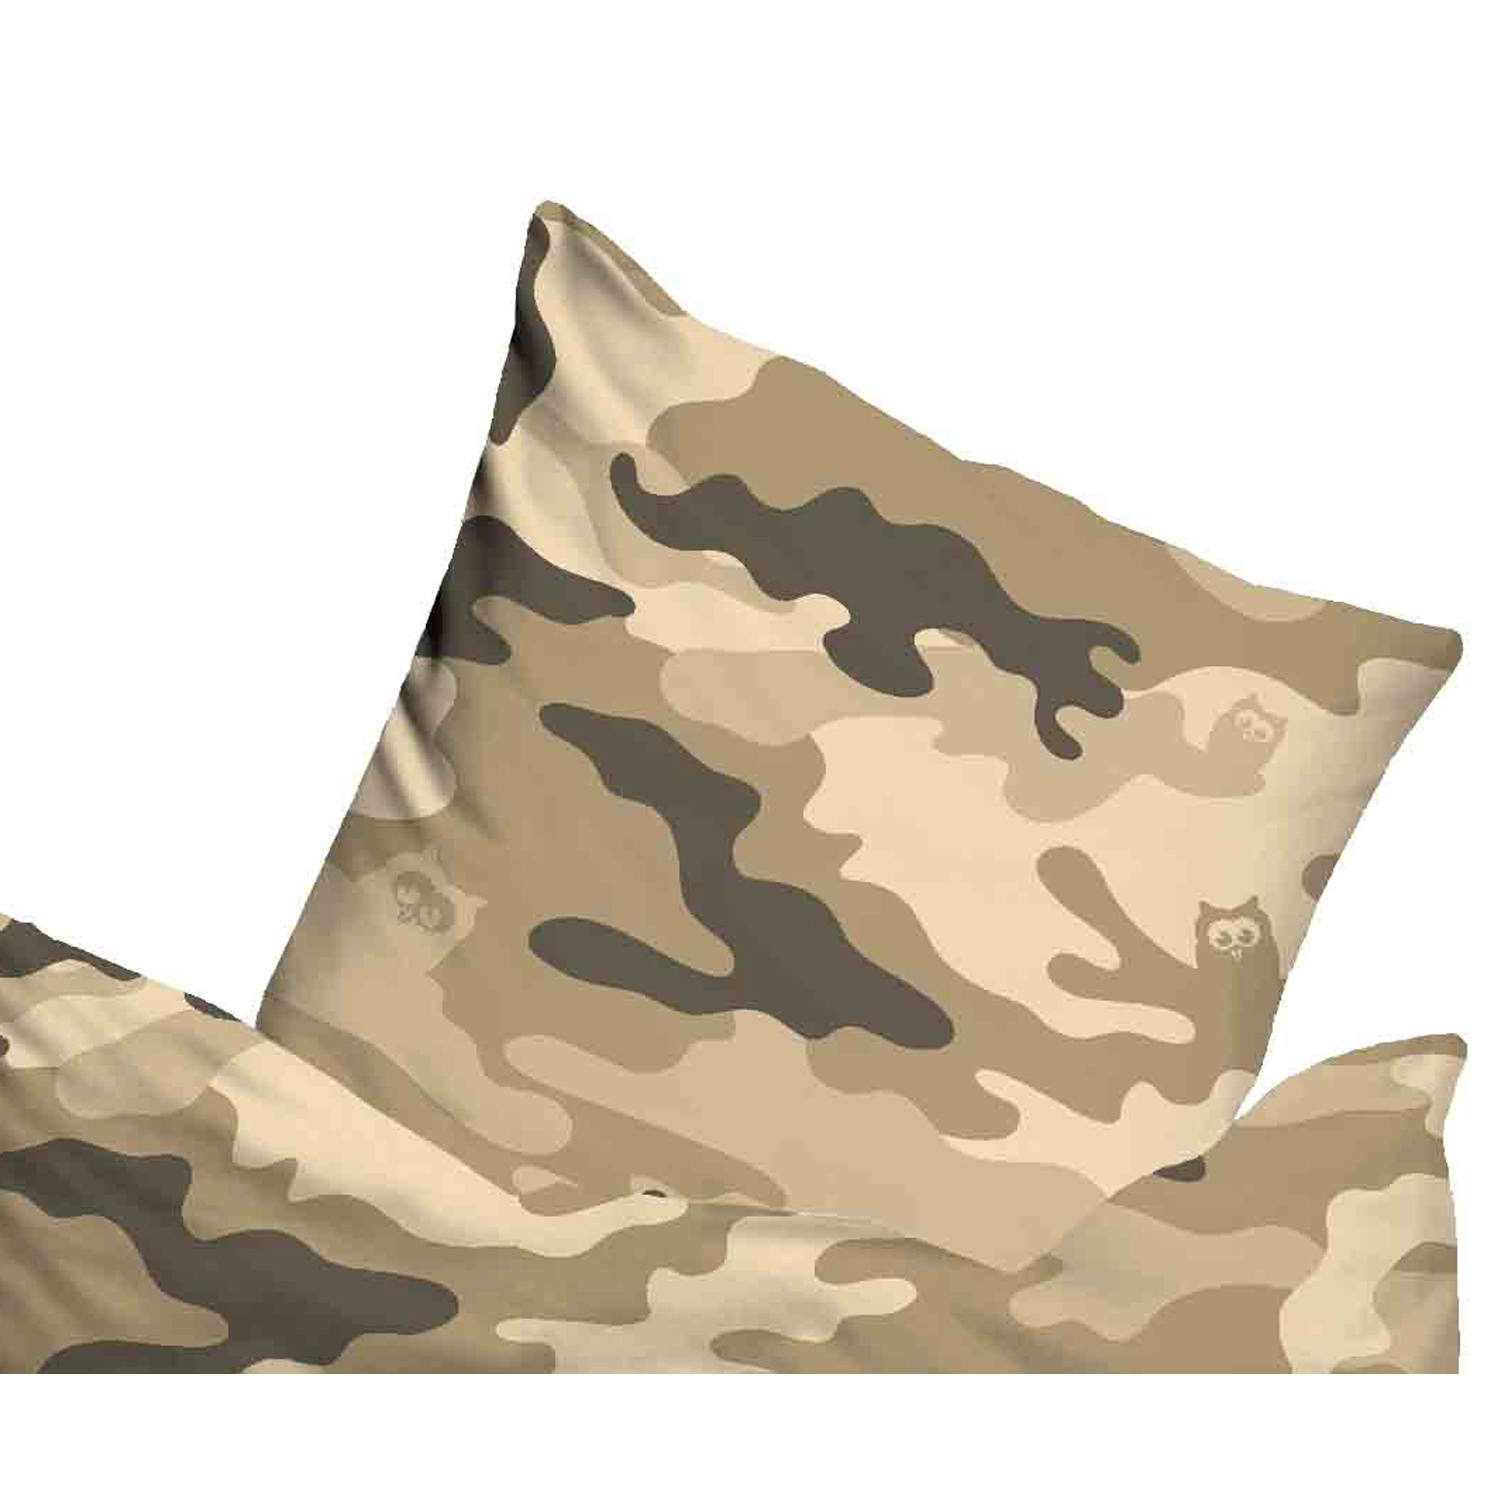 suenos kissenbezug renforce camouflage military 80 x 80 cm ebay. Black Bedroom Furniture Sets. Home Design Ideas